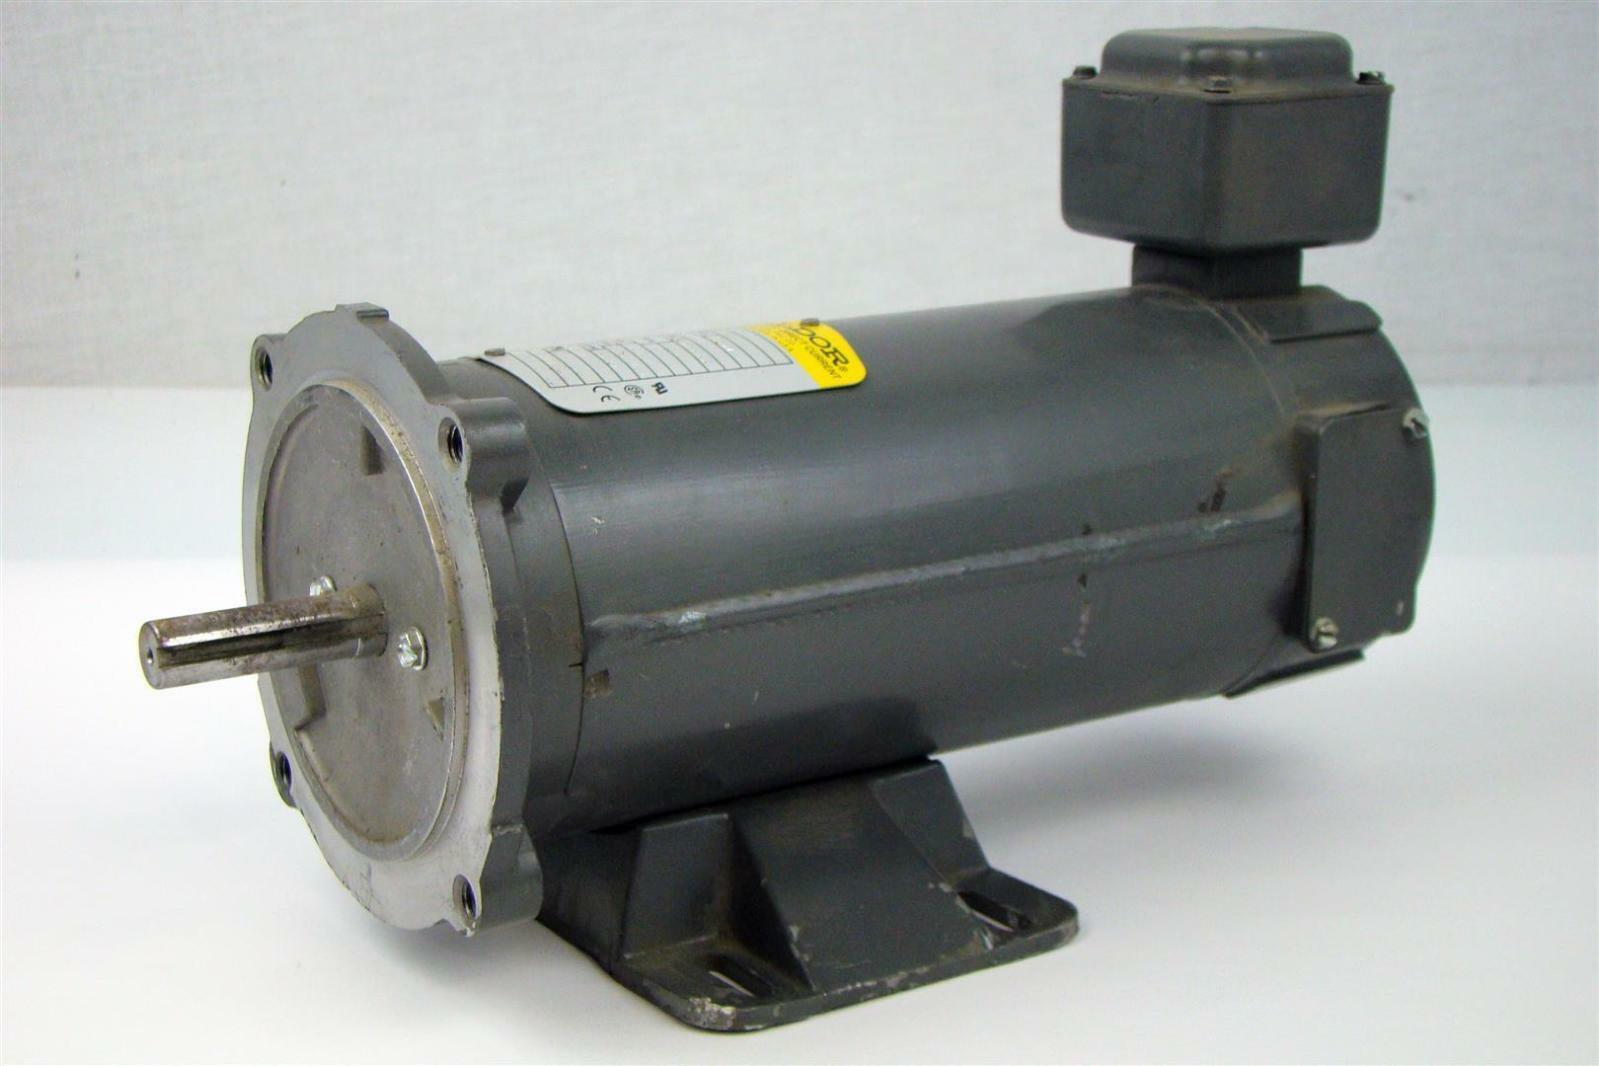 Baldor industrial dc motor 1 2hp 1750rpm 180v 2 5a cdp3326 for Industrial motor control 7th edition pdf